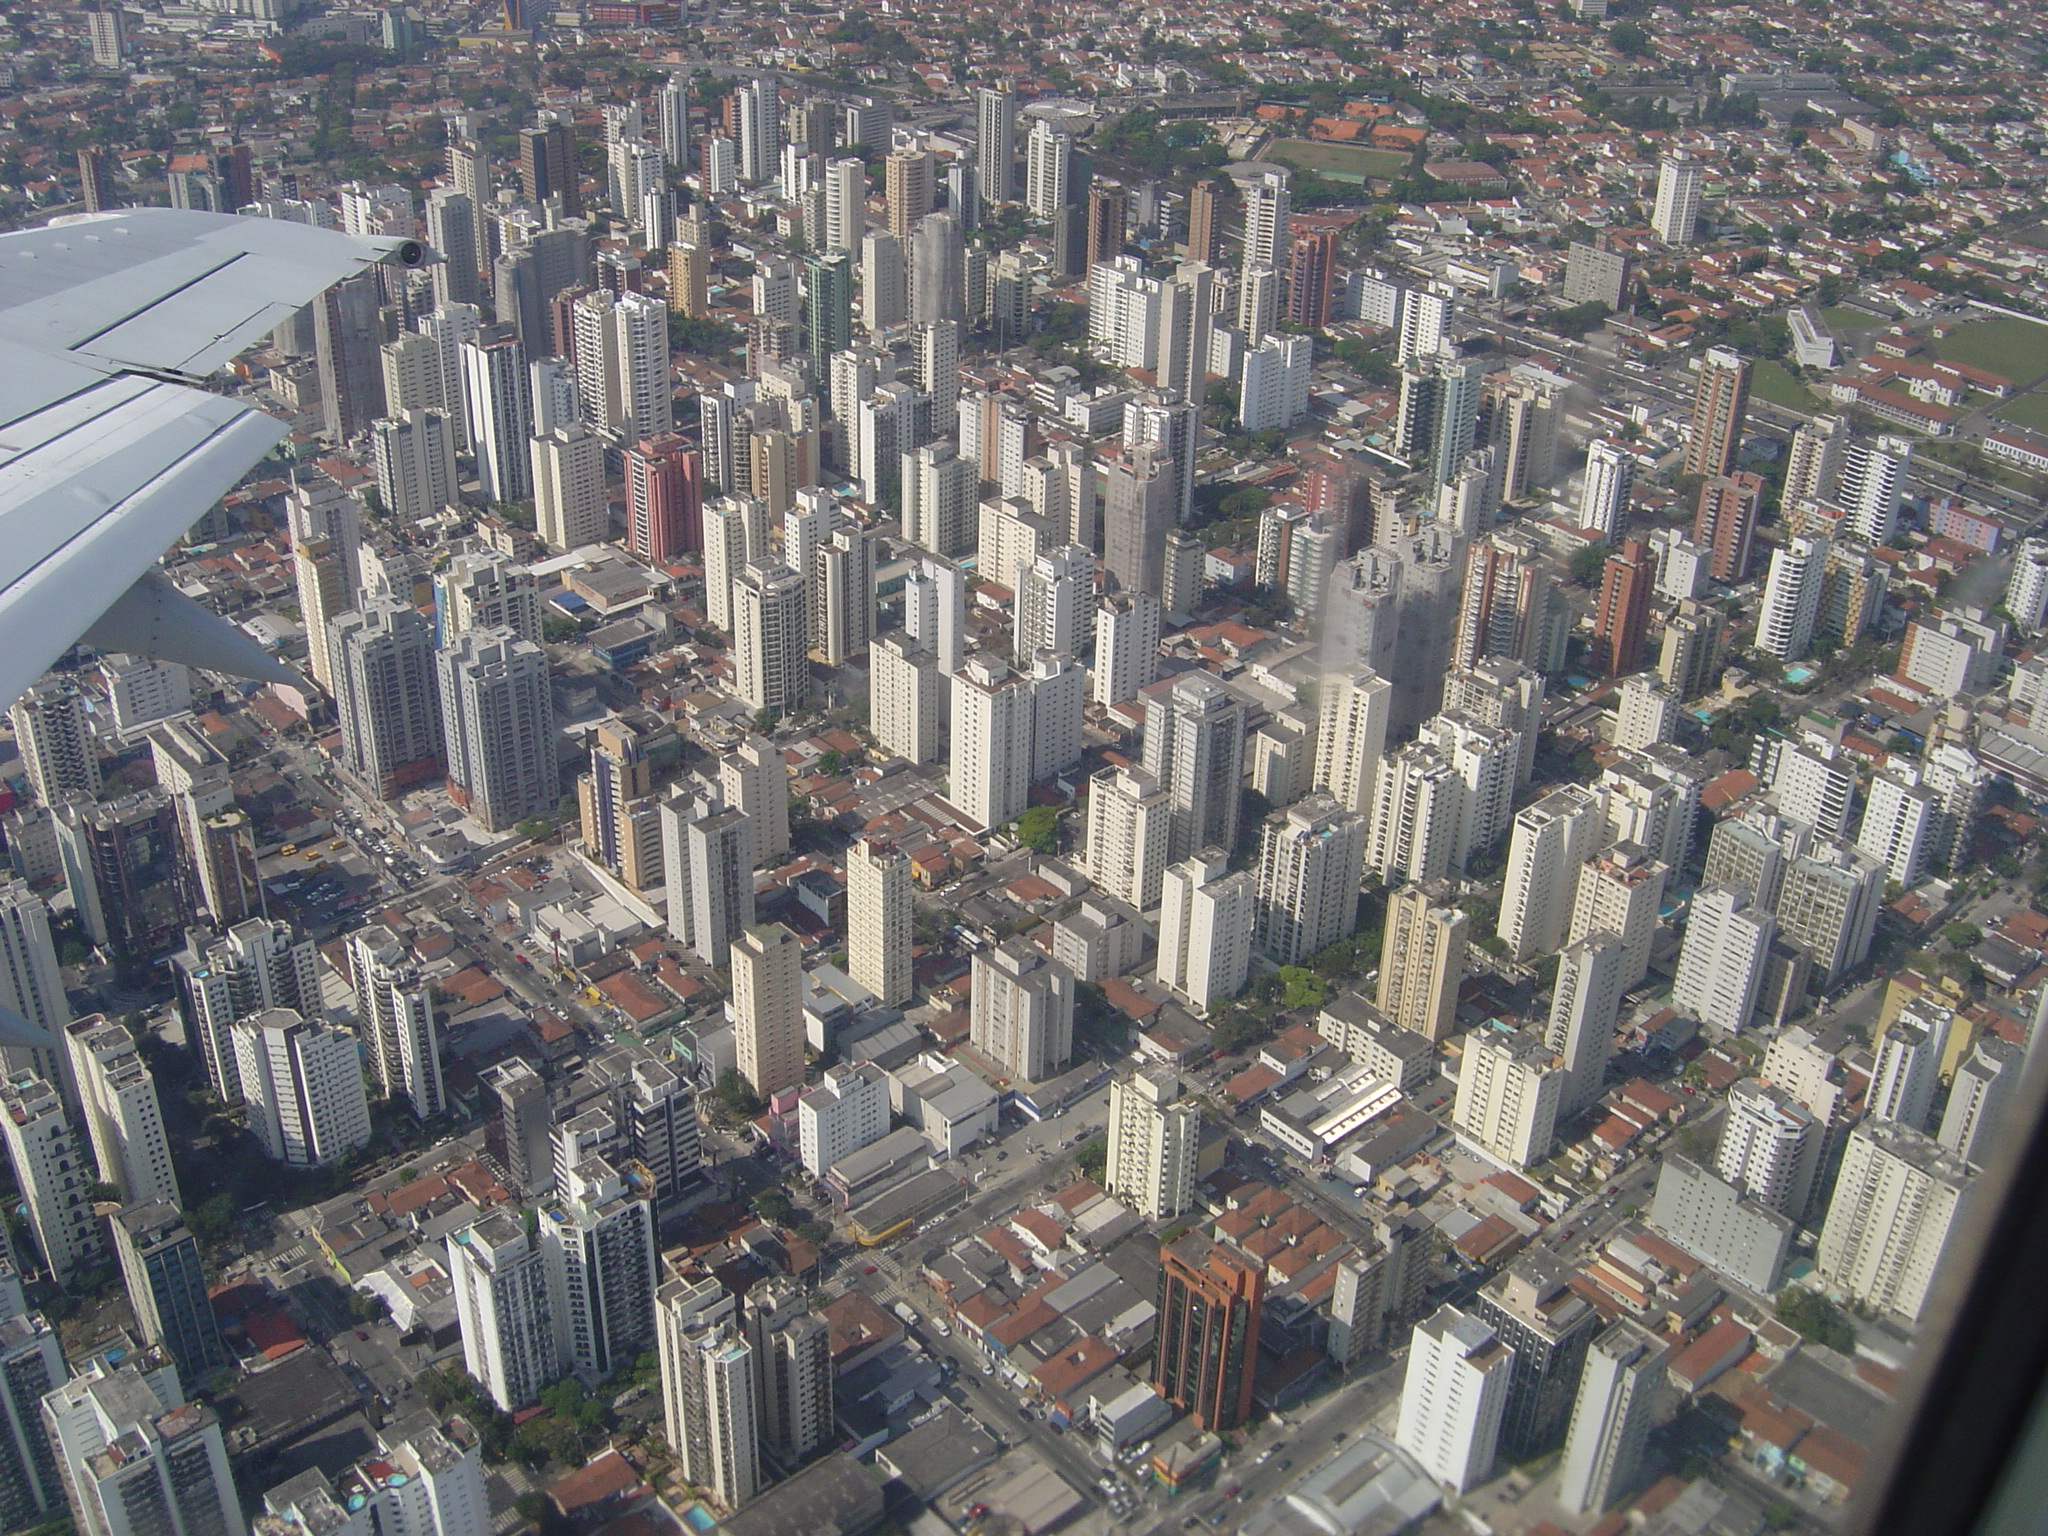 poows city skyscraper skyscrapers tall buildings city